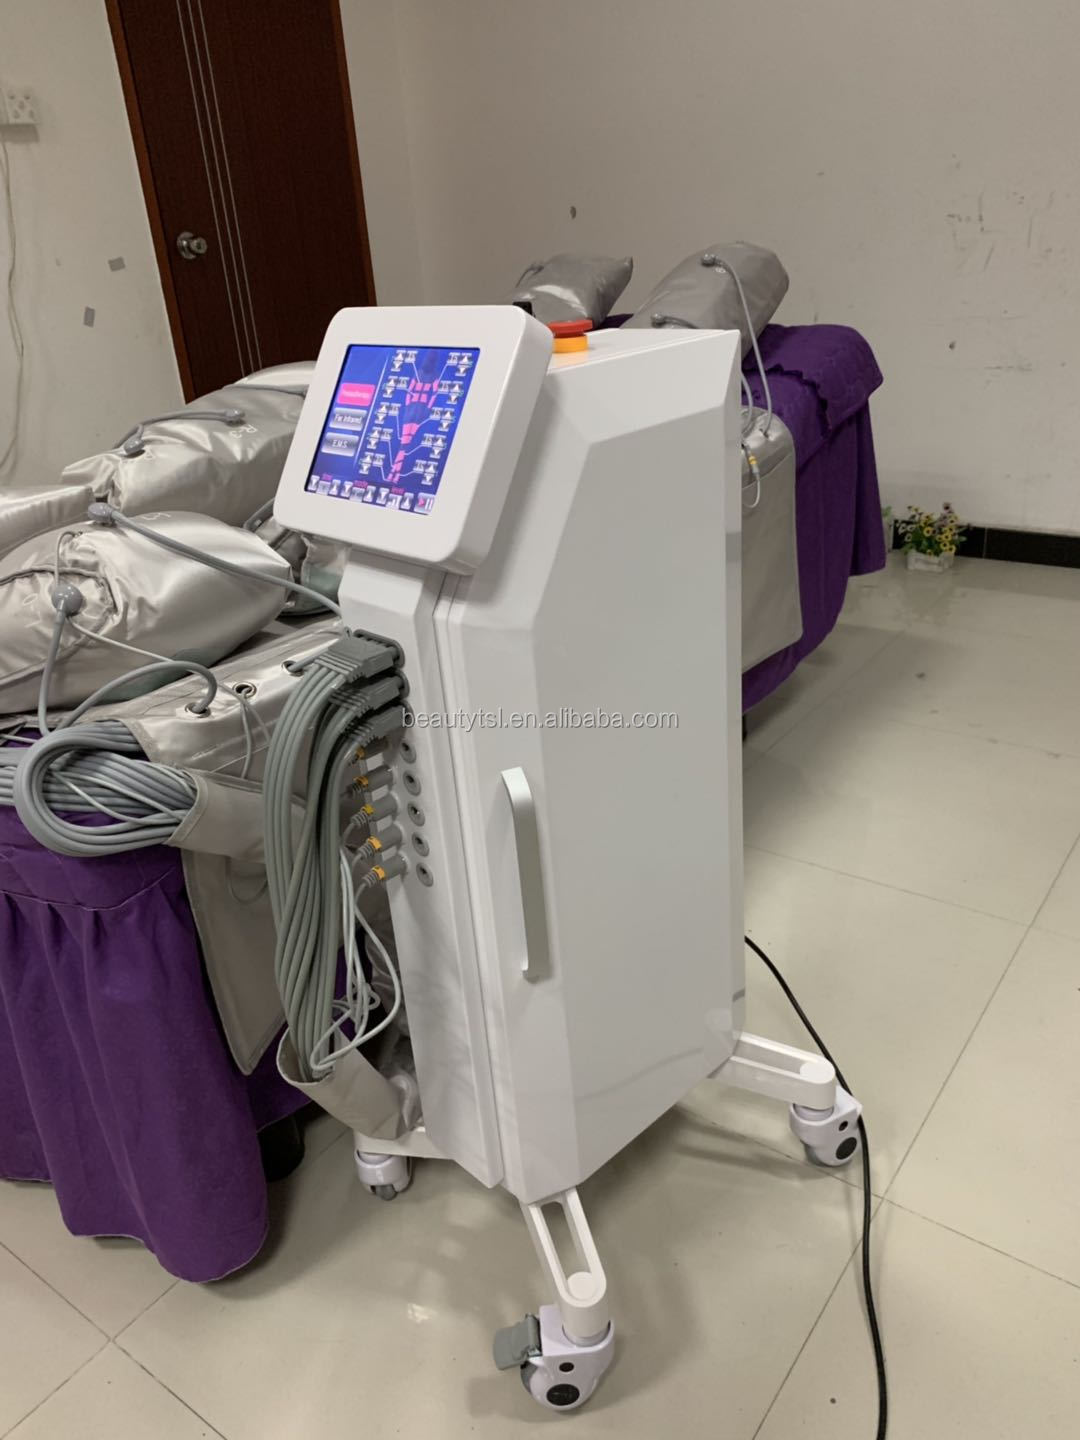 TSL-1120C 3 in 1 with EMS far infrared pressotherapy slim beauty equipment pressotherapy infrared thermotherapy cellulite machine 4.jpg